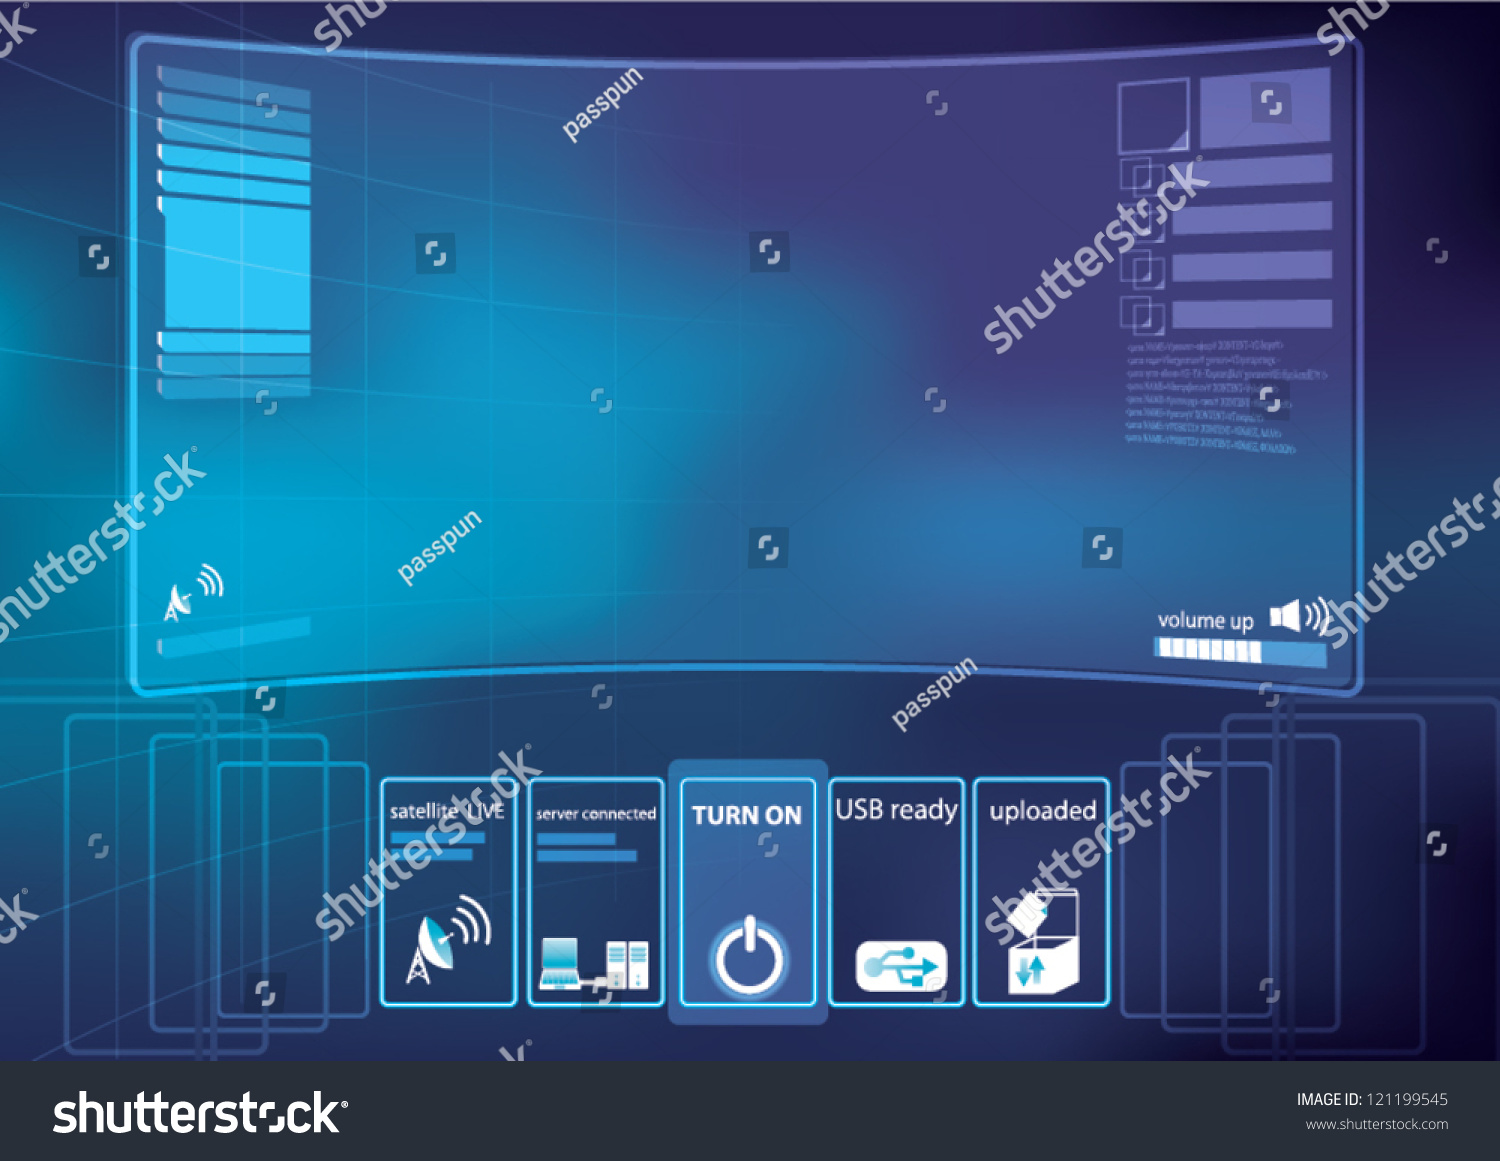 Abstract Technology Background Vector Illustration Control